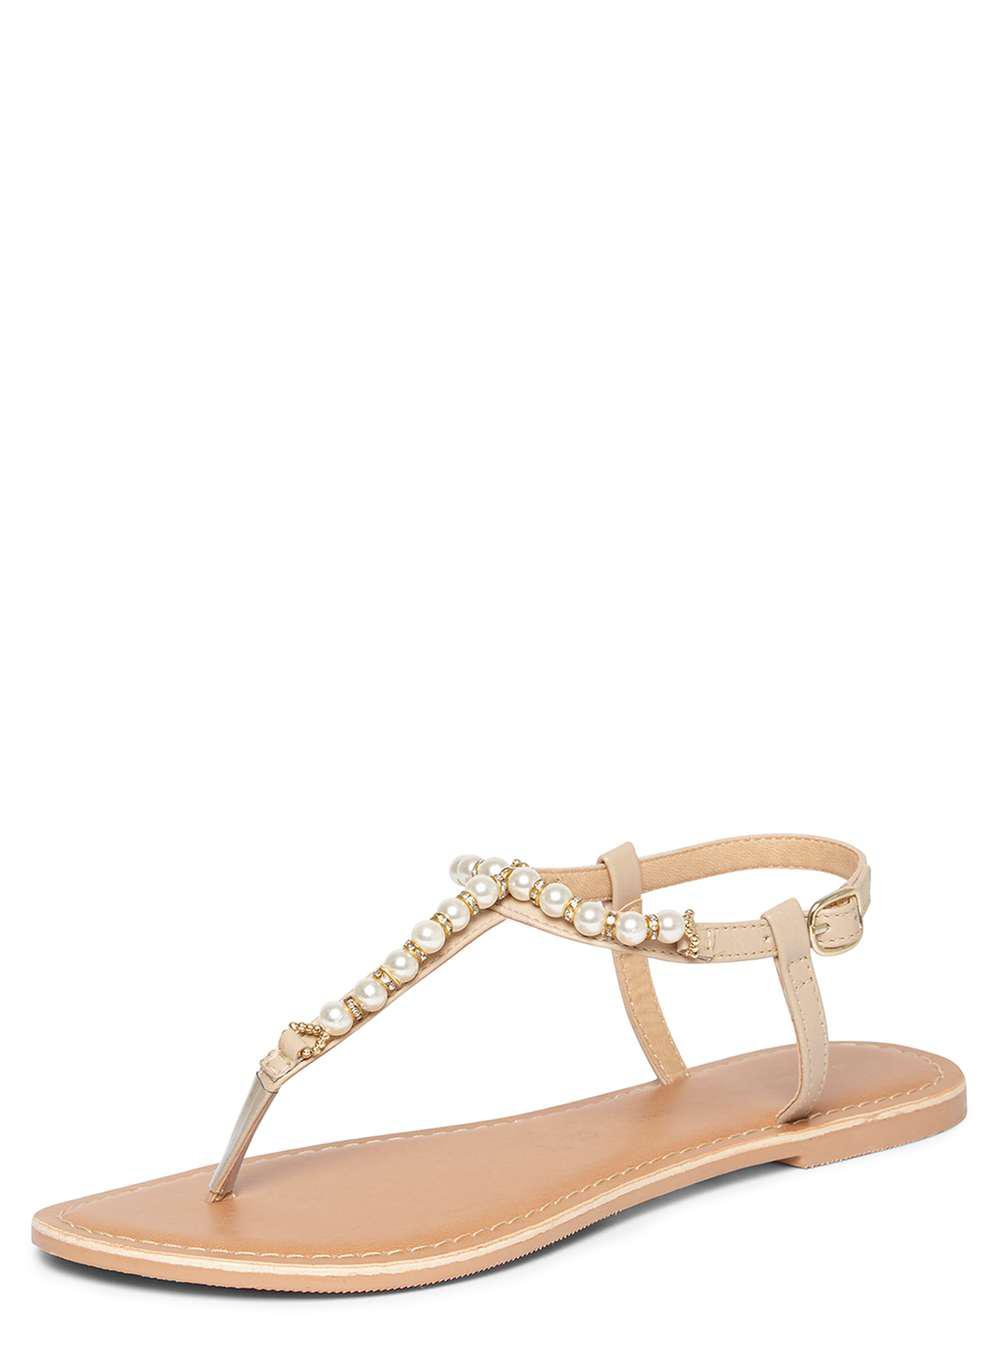 c6ca26b1dbc Lyst - Dorothy Perkins Nude  florence  Pearl Sandals in White